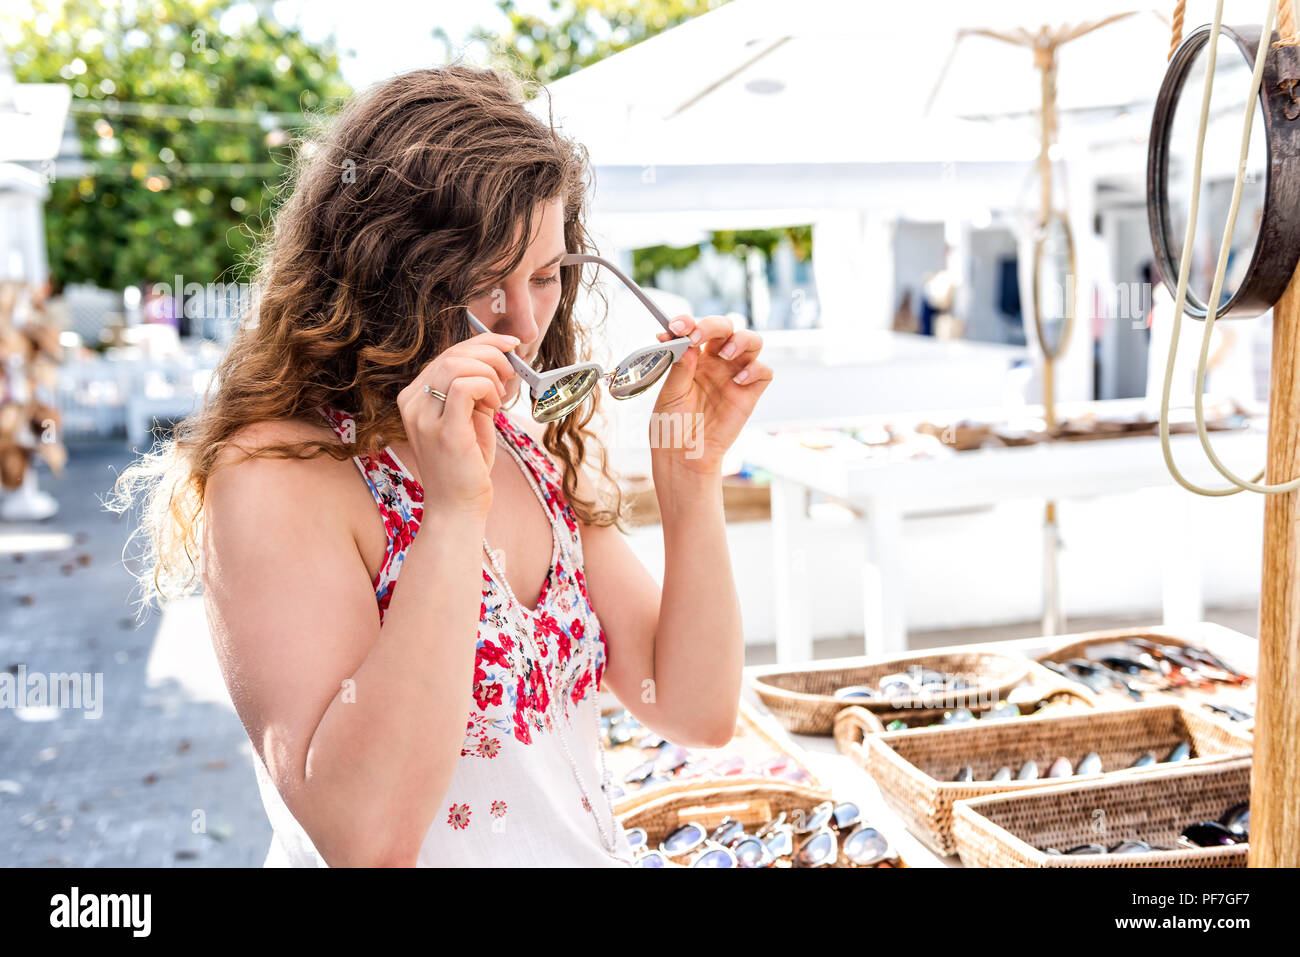 Closeup of young woman shopping for modern sunglasses trying on in outdoor market shop store in European, Greece, Italy, Mediterranean town, village i - Stock Image